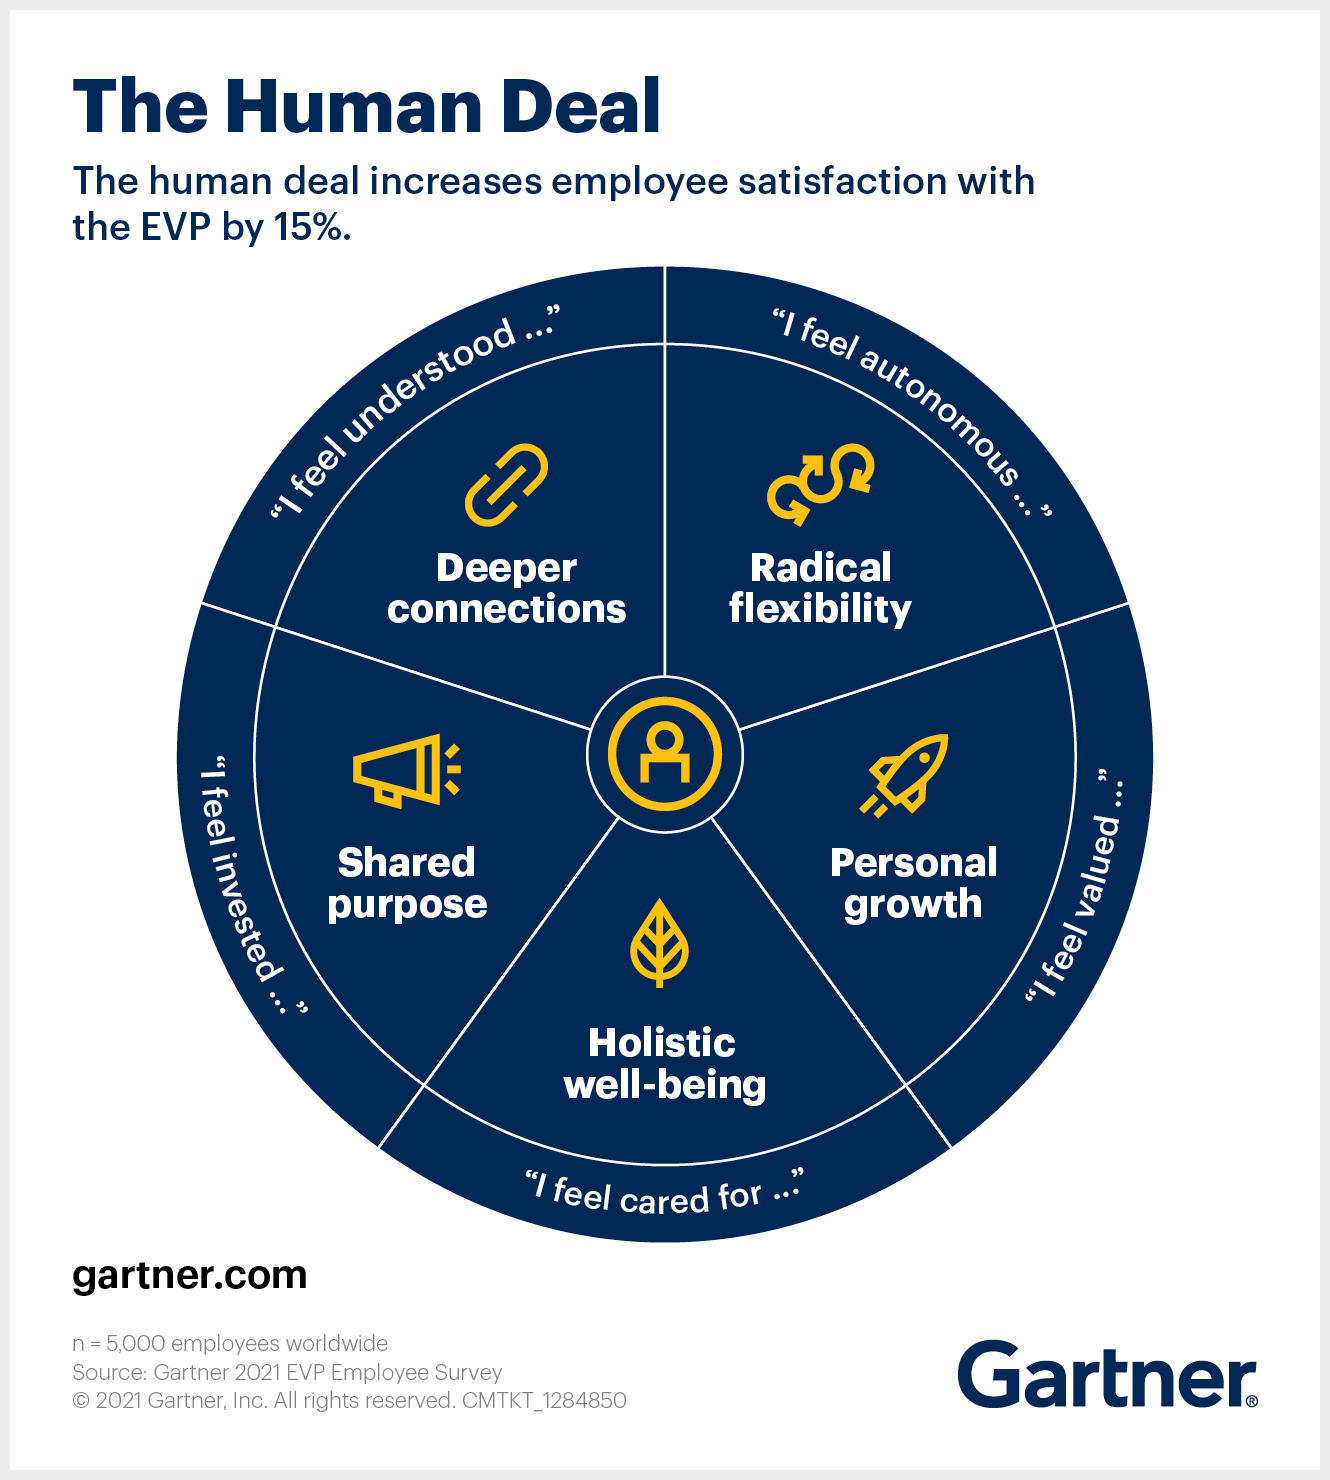 Employee Value Proposition (EVP) that is more human-centric